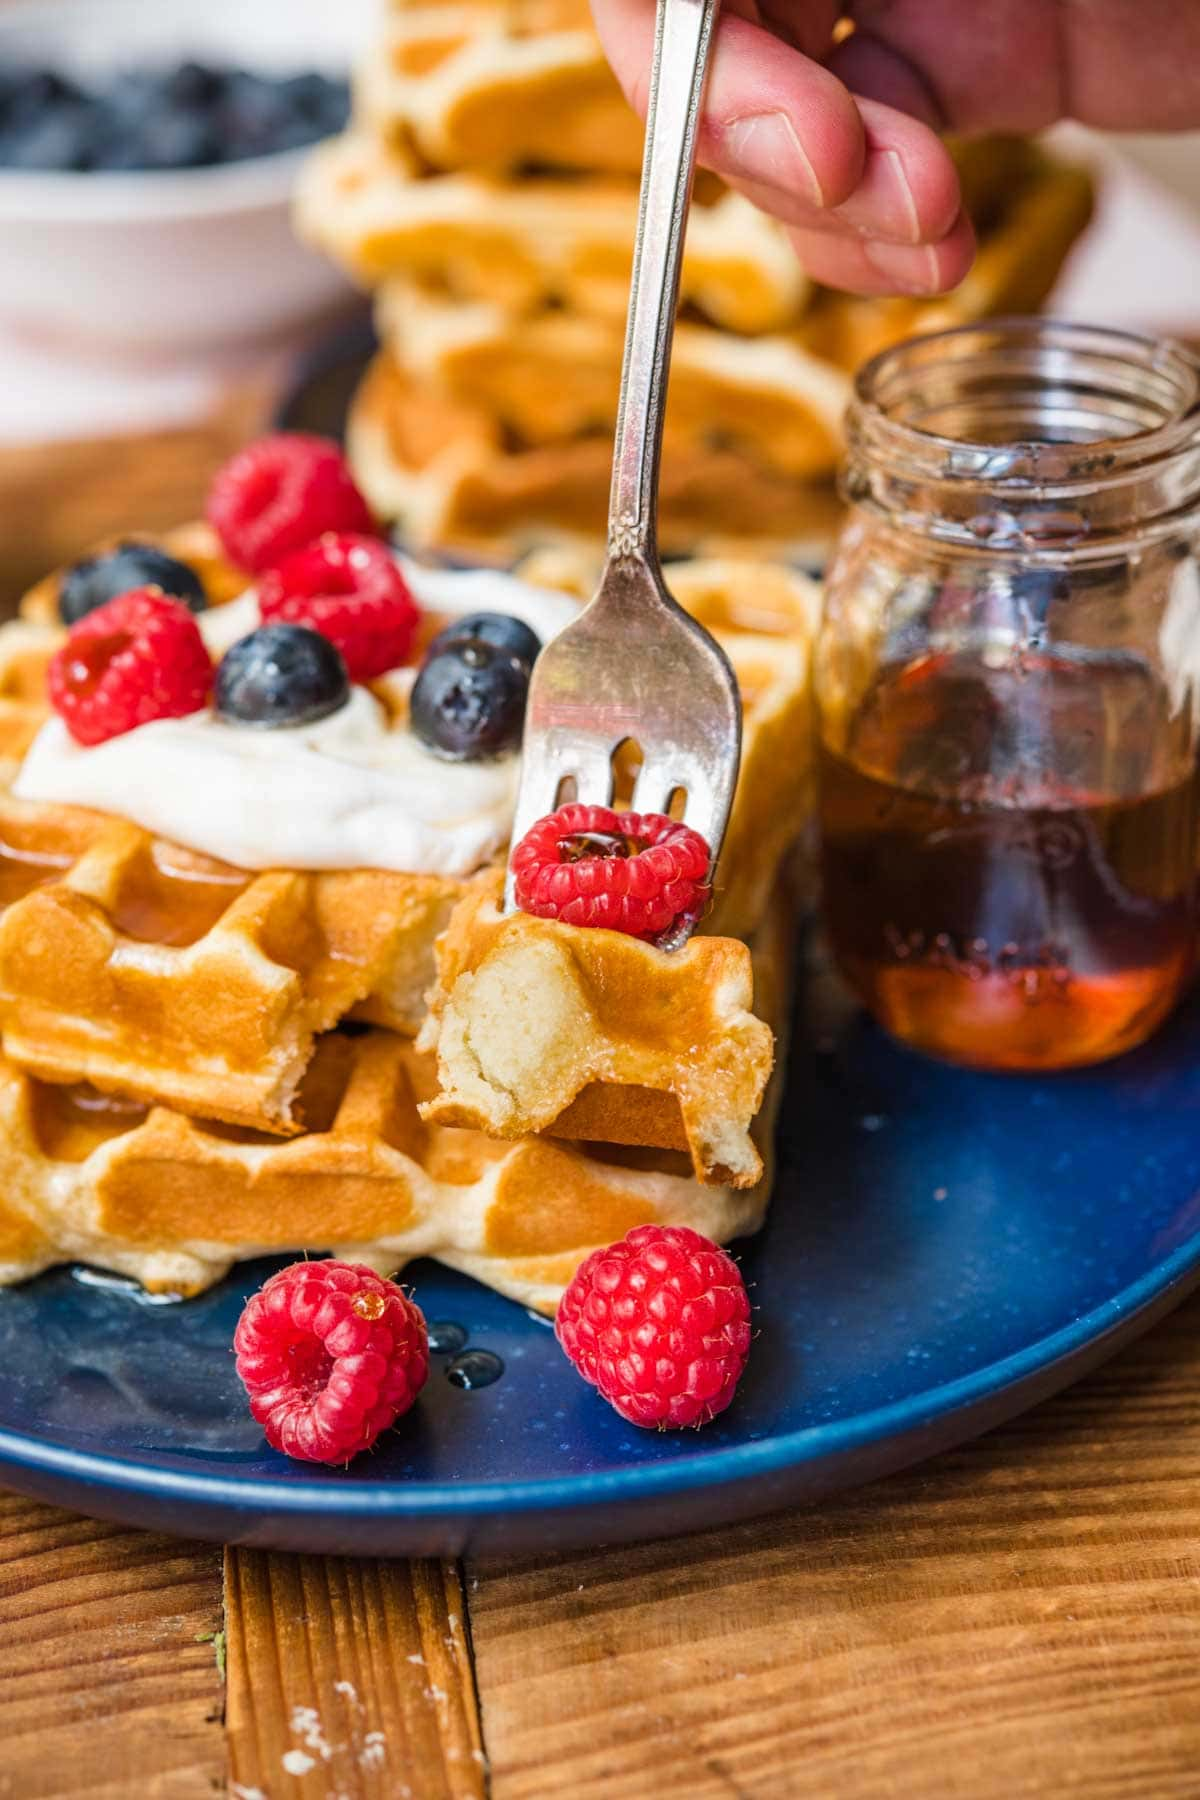 Classic Waffles on plate with whipped cream and berries